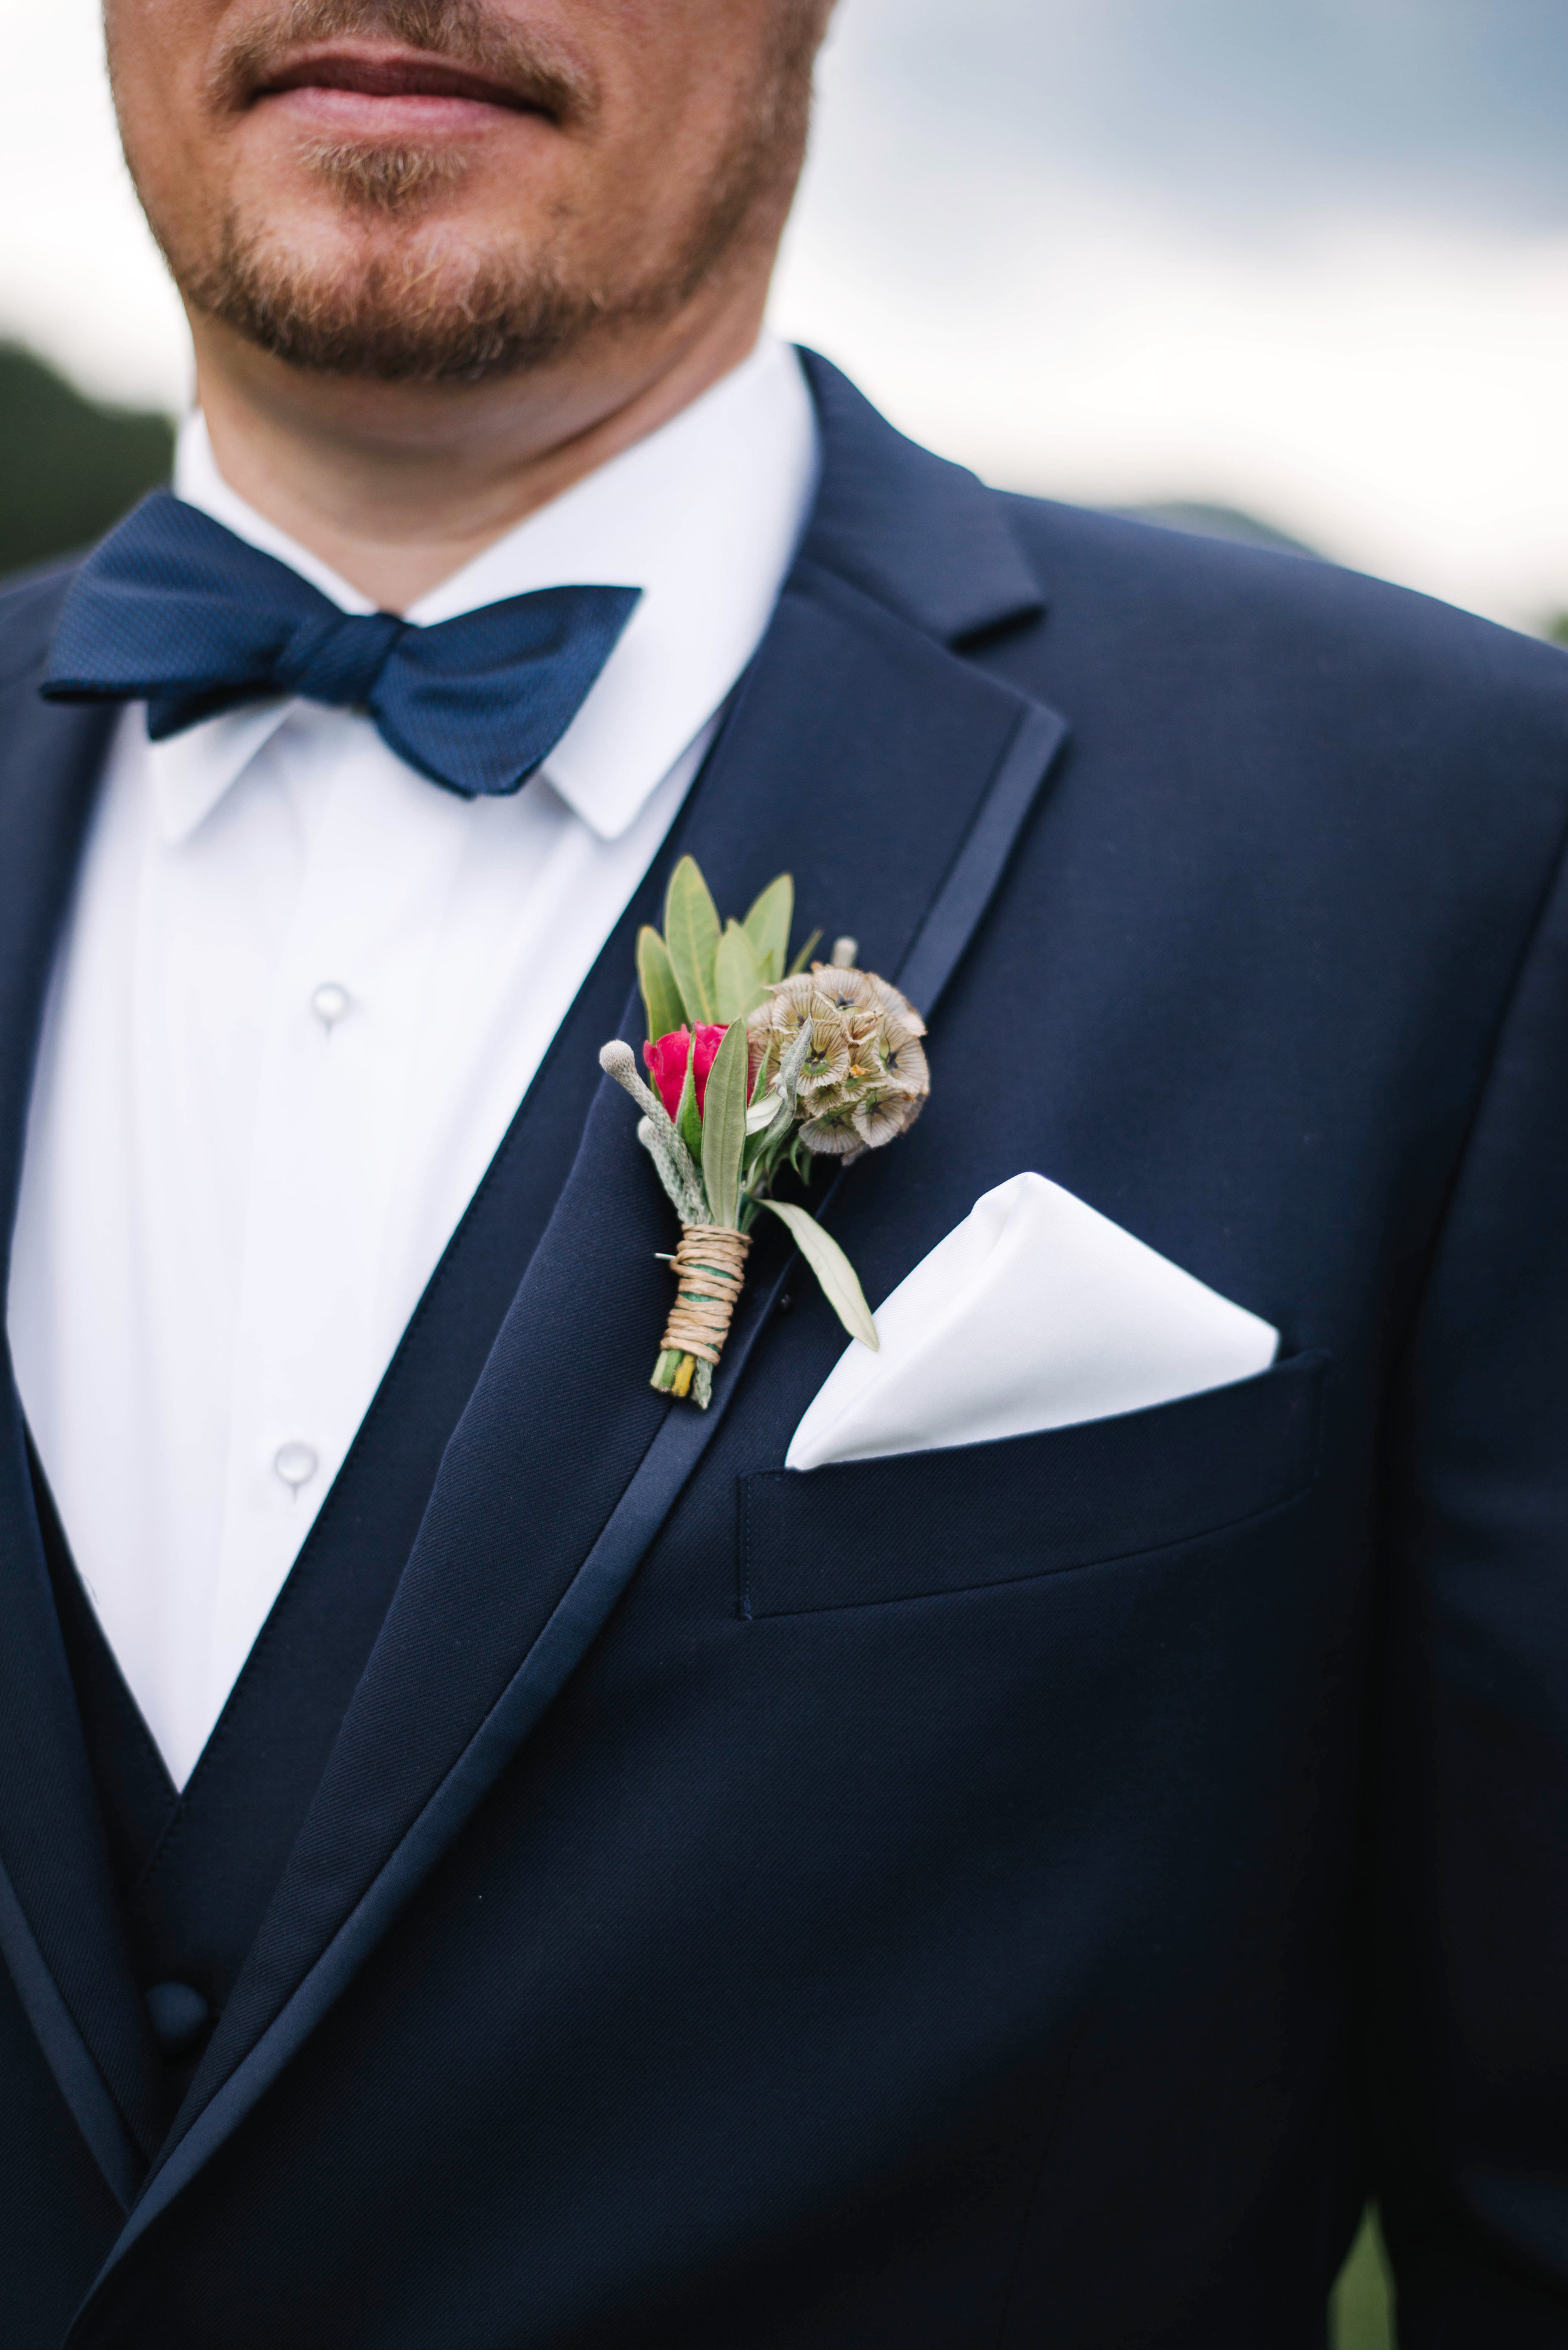 Flowers by Lace and Lilies, manly and mountainous boutonniere, grey tux with bow tie - scabiosa pod